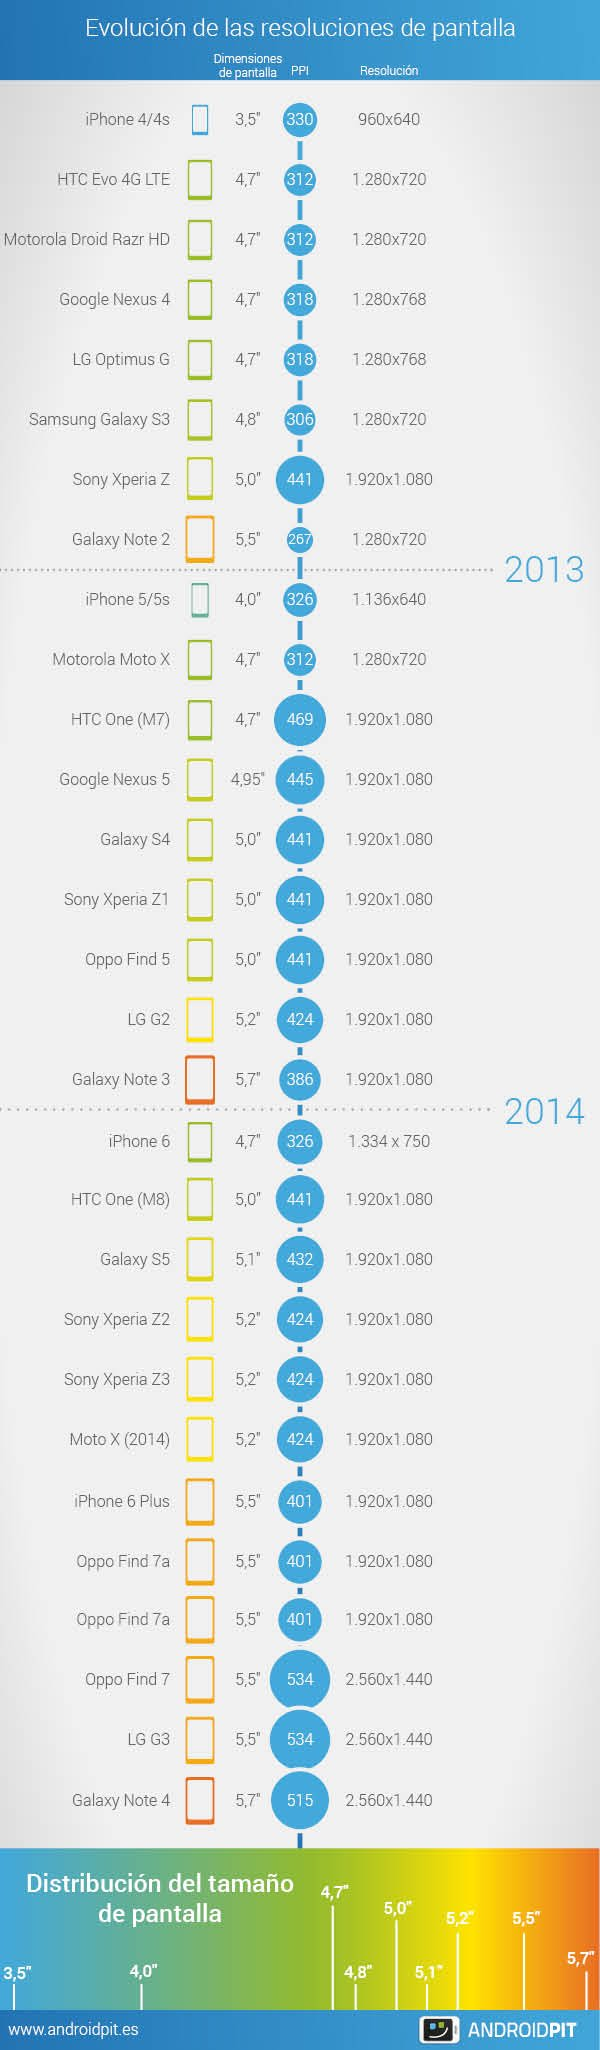 infographic screen sizes v4 es